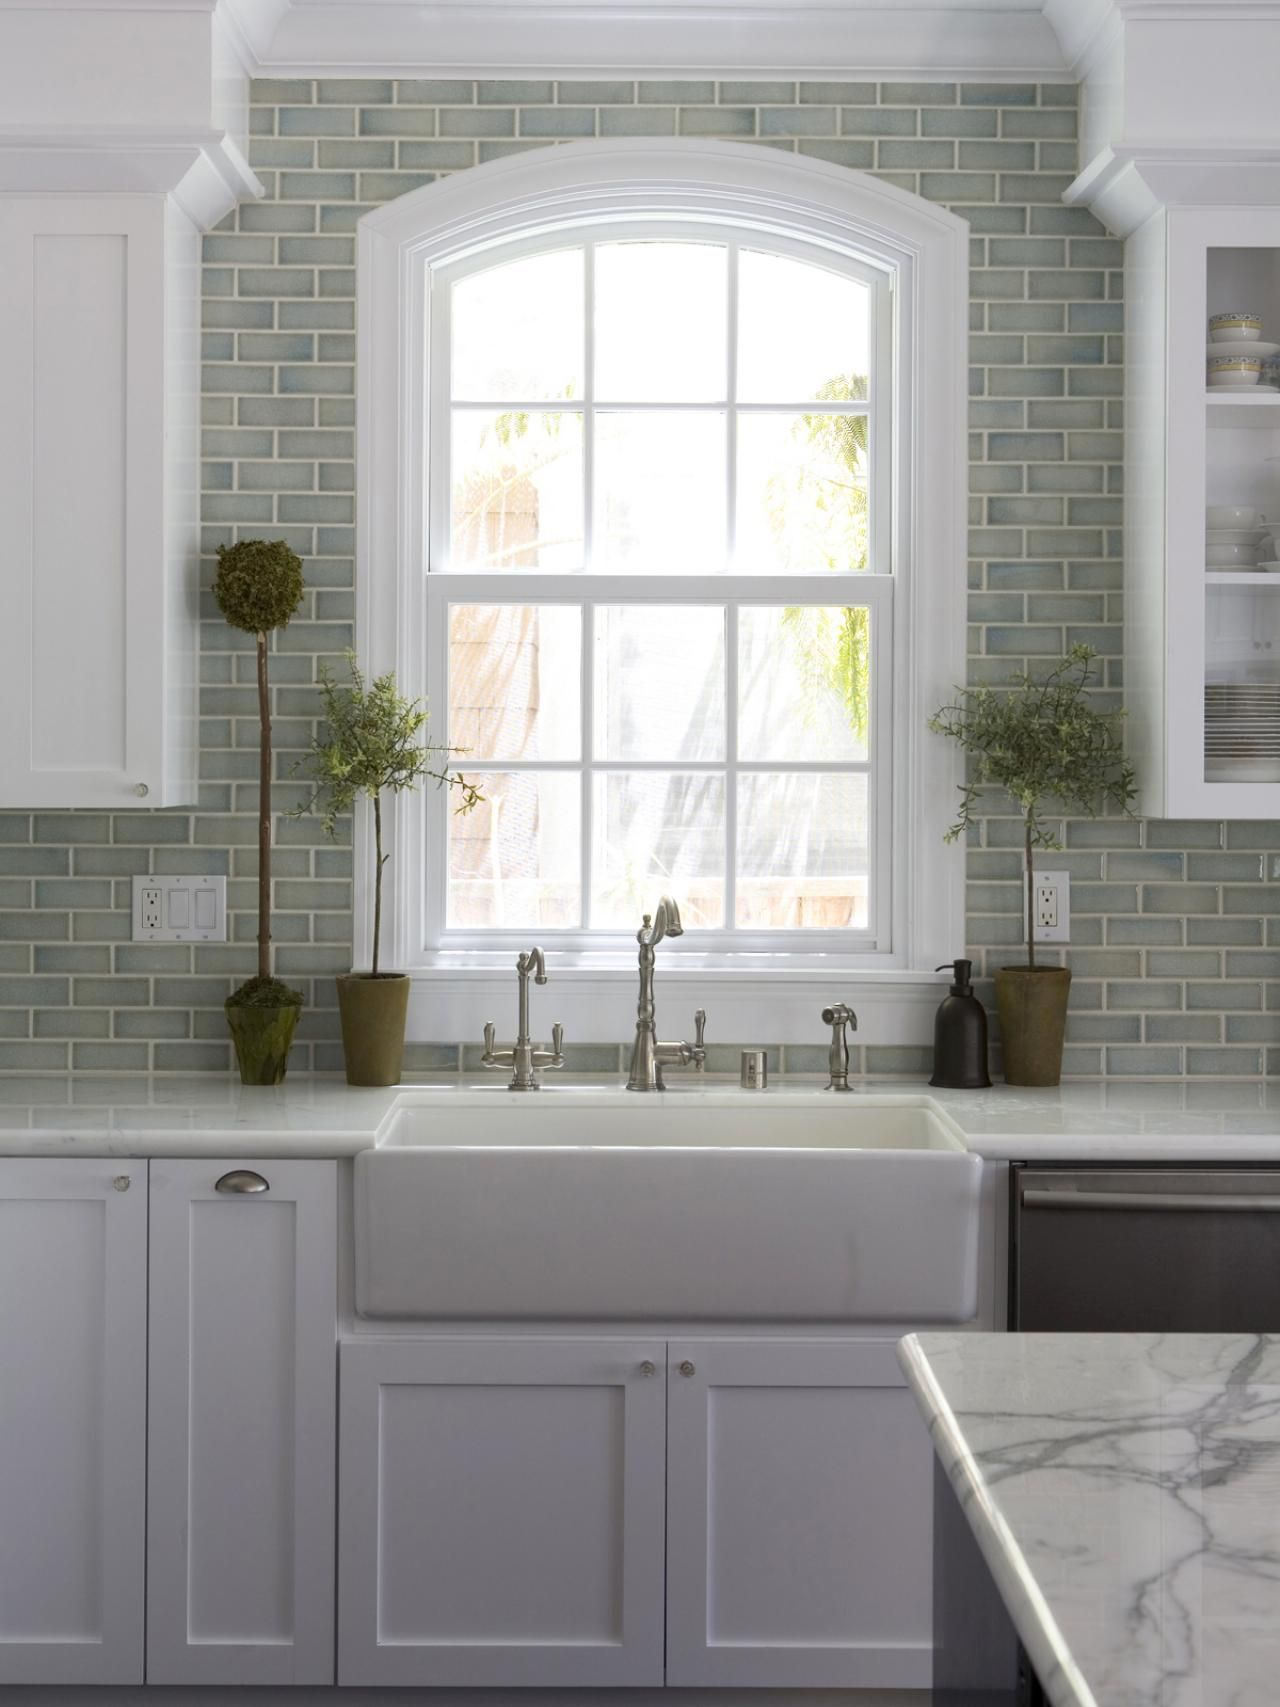 Pin by jana mcconathy on kitchen remodel pinterest kitchens